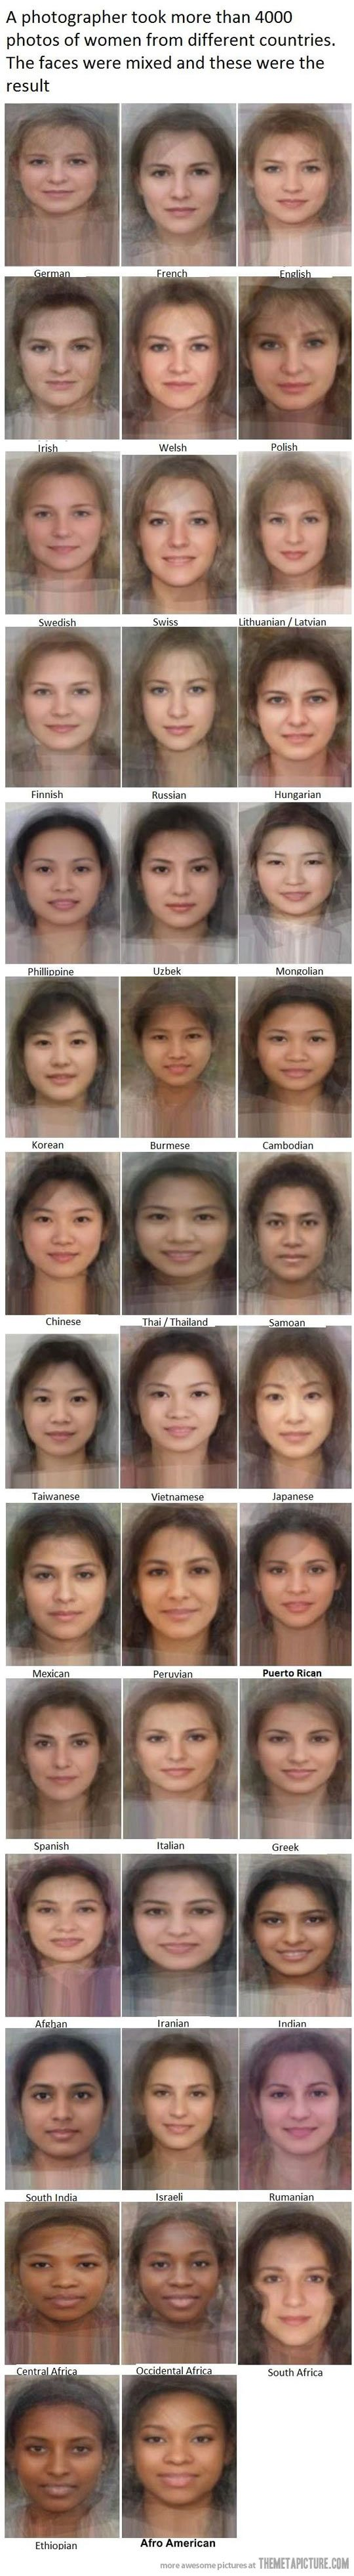 """Hundreds of photos of women from each country combined to make the """"general face"""". Awesome photography project."""